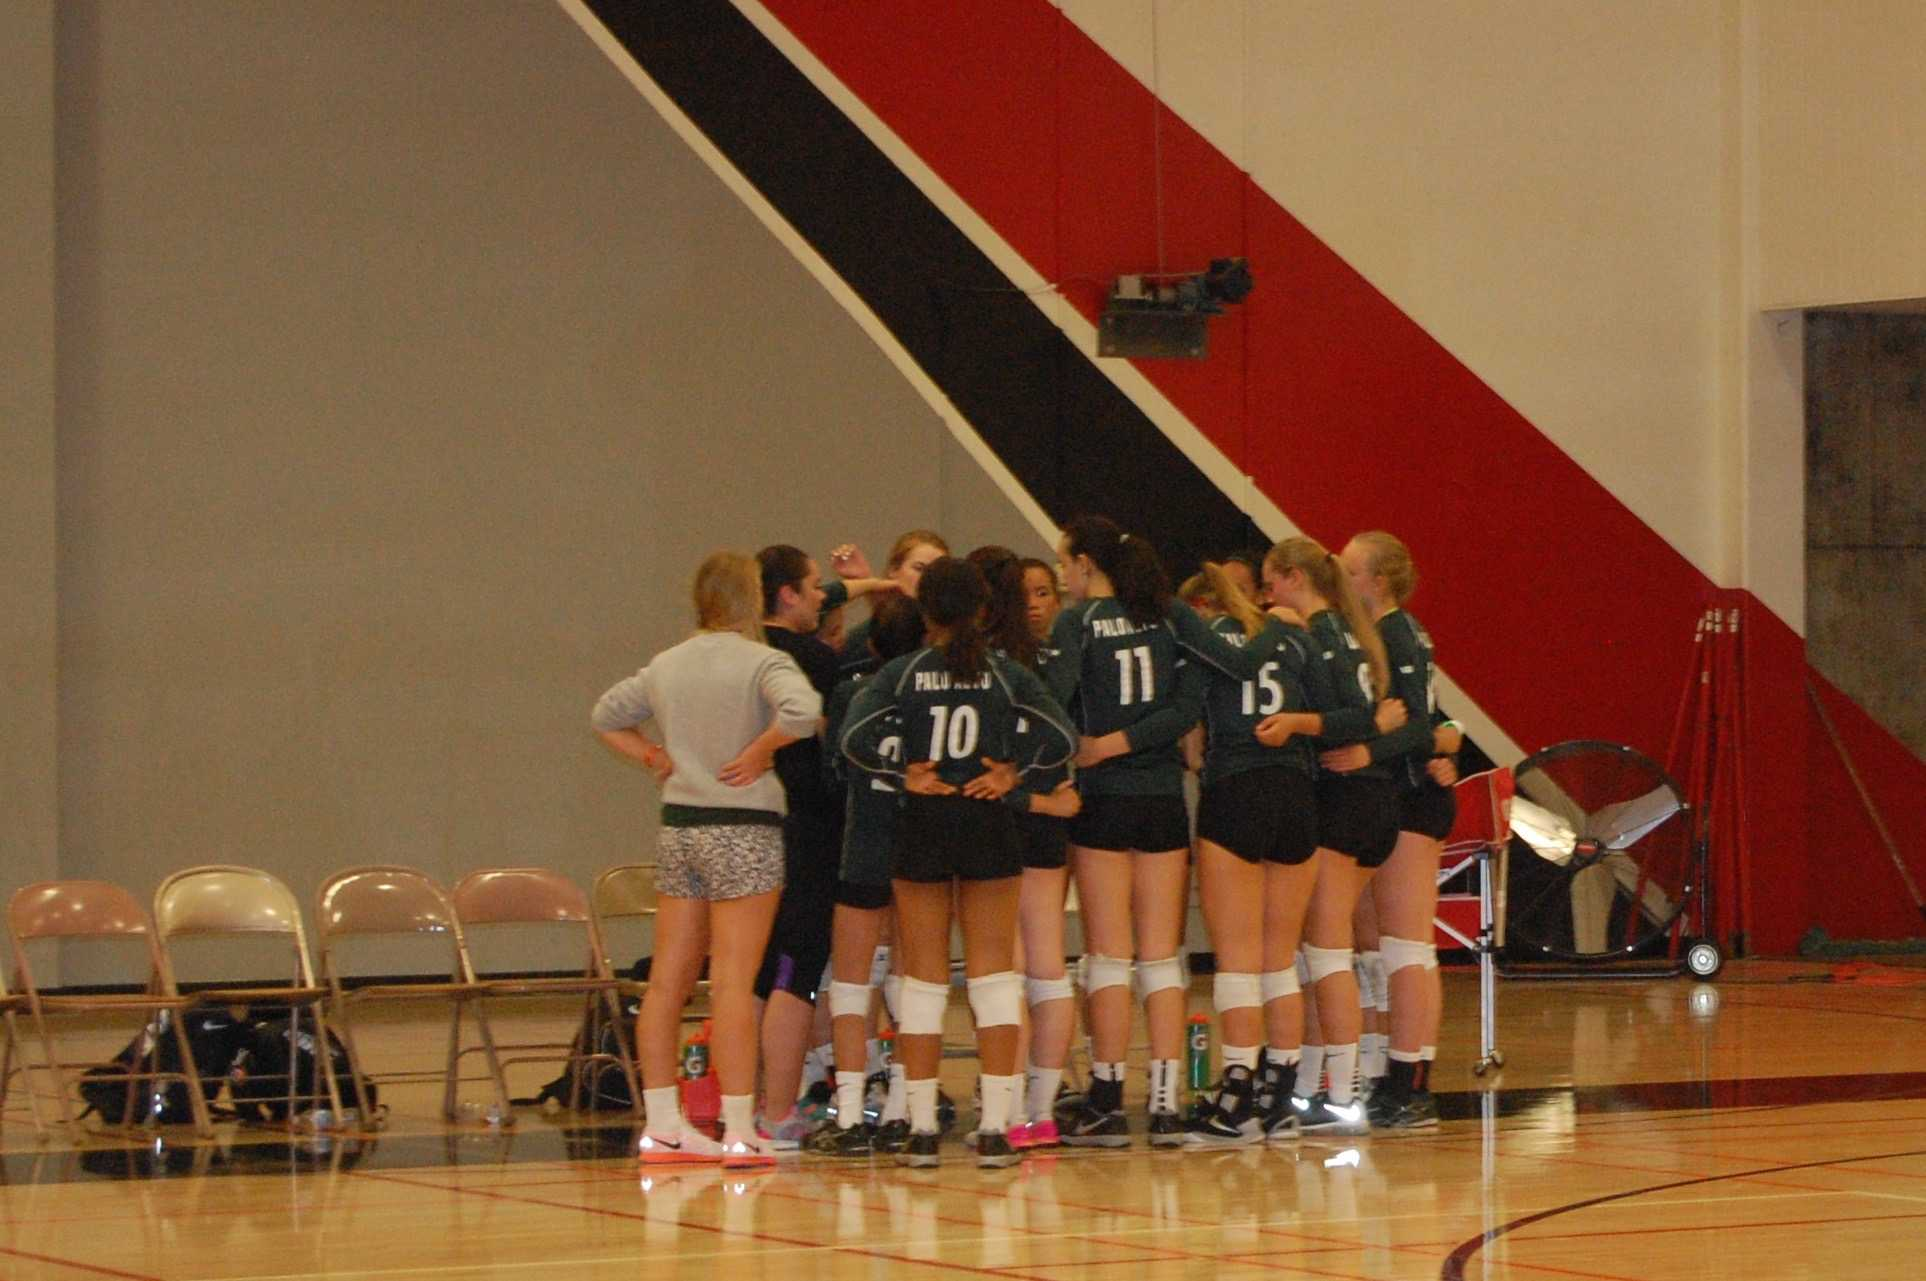 The volleyball team huddles during a timeout in their match against Woodside. The Vikings went on to win in three sets, 25-17, 25-16, 25-15.